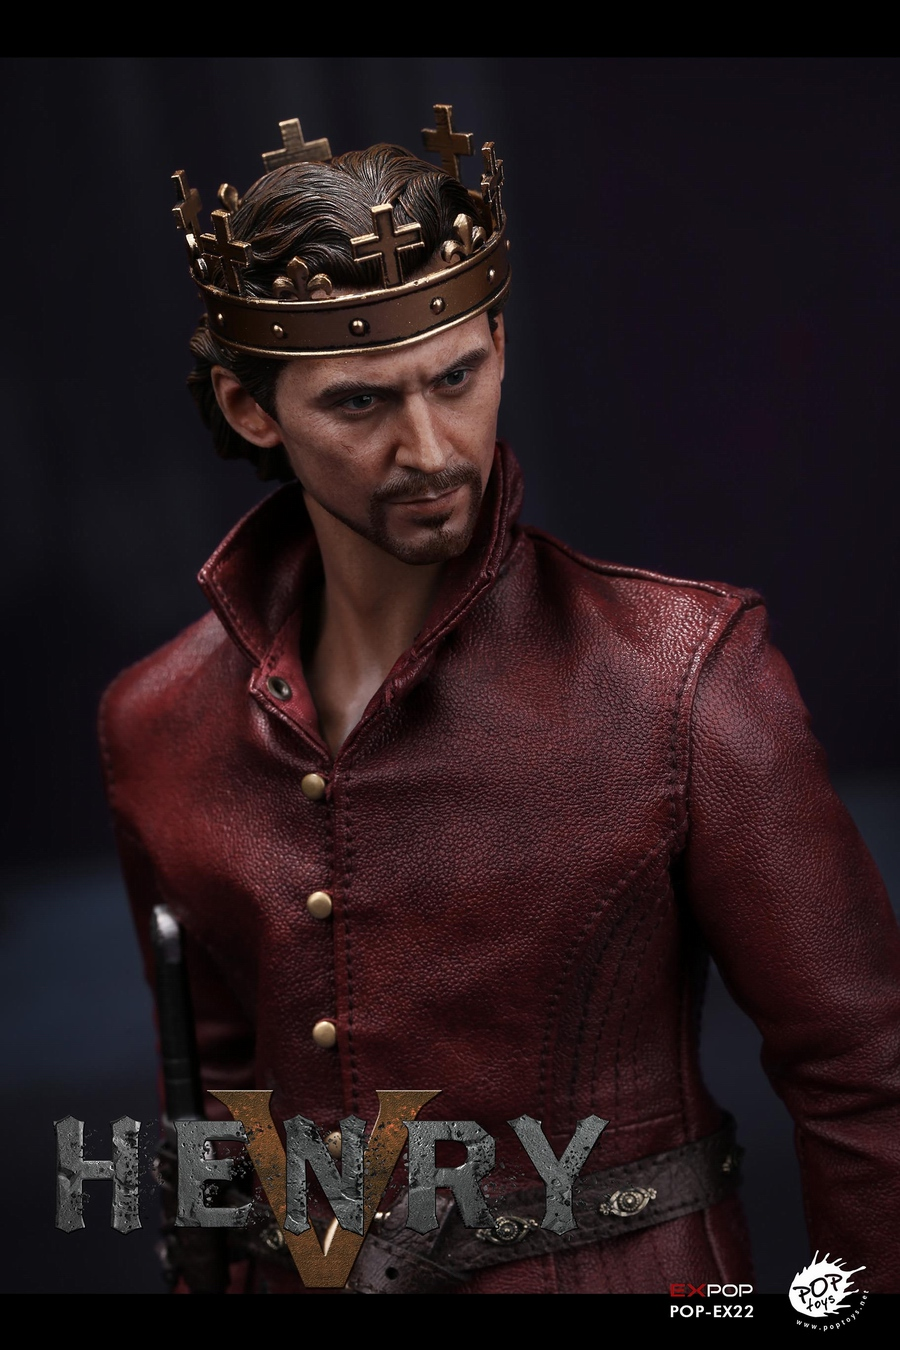 TVbased - NEW PRODUCT: POPTOYS [WF2019 Shanghai Conference Edition]: 1/6 King of England - Henry V [The Throne Edition] POP-EX22 17592110